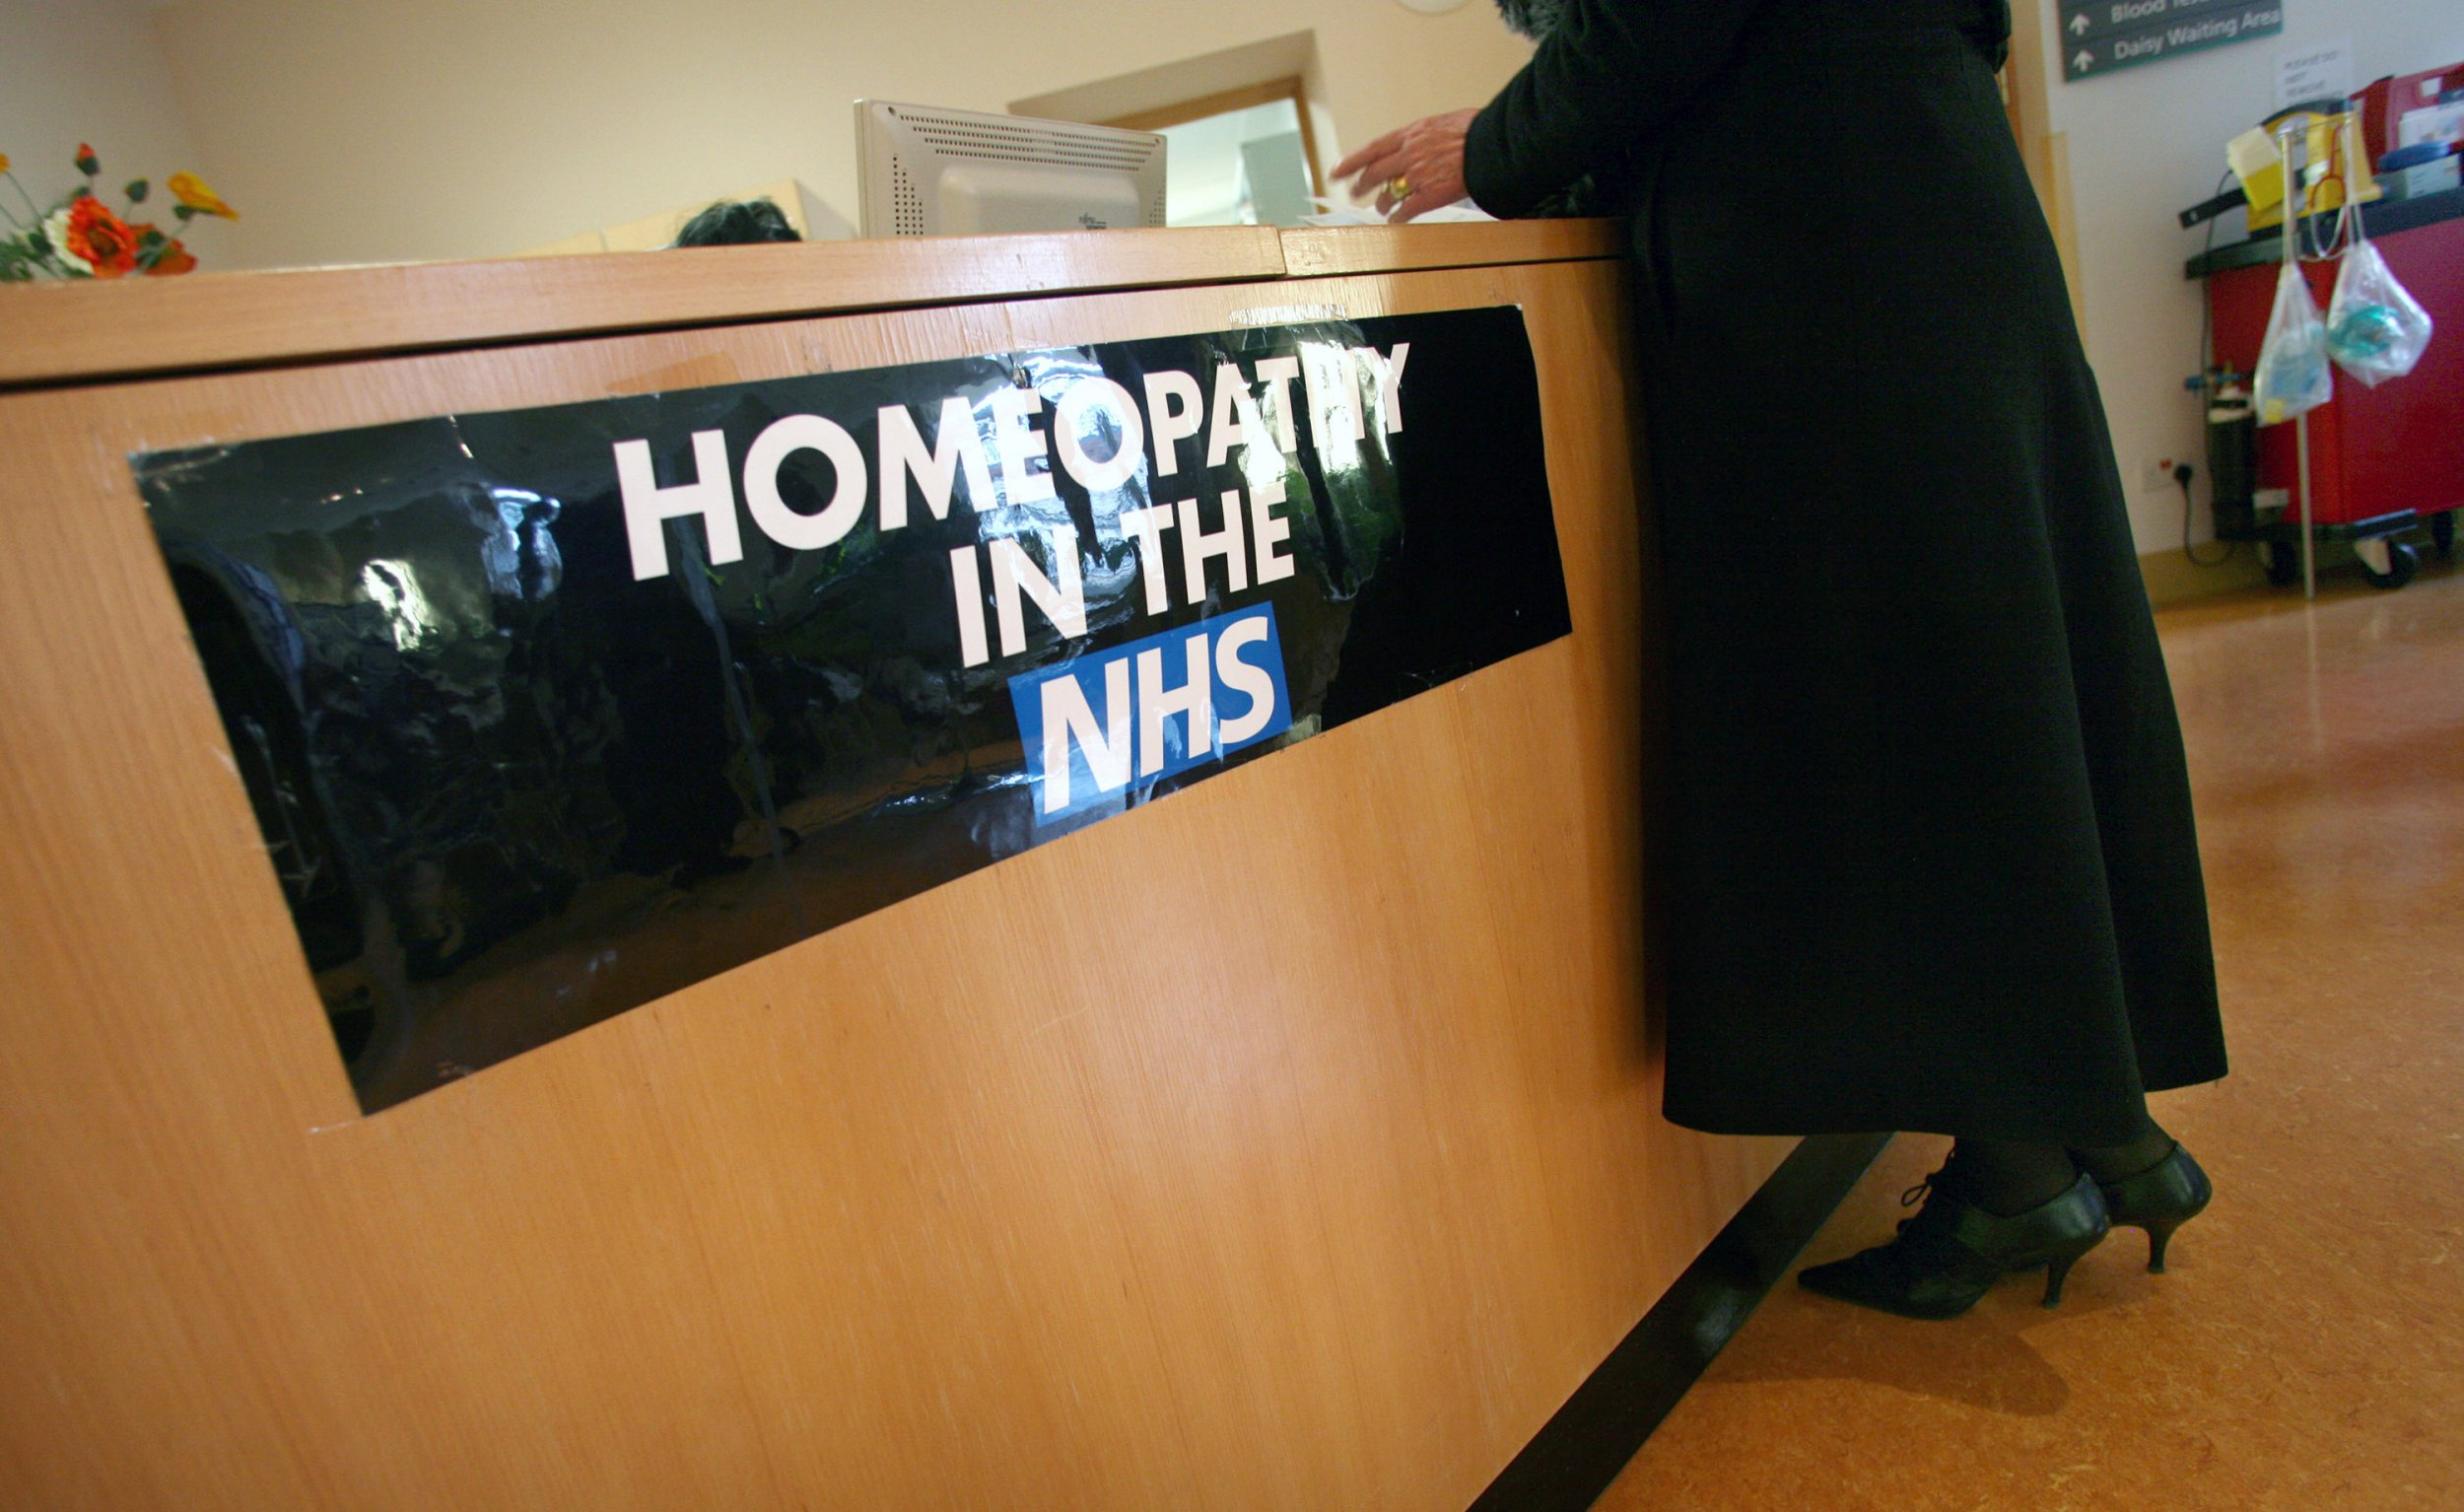 UNITED KINGDOM - MARCH 19: A women stands at the Homeopathy reception desk, at the Royal Homeopathic hospital in London, U.K., on Wednesday, March 19, 2008. Hundreds of cancer victims sought legal remedies in recent years to force the National Health Service's local trusts to pay for drugs that European regulators have approved. (Photo by Graham Barclay/Bloomberg via Getty Images)